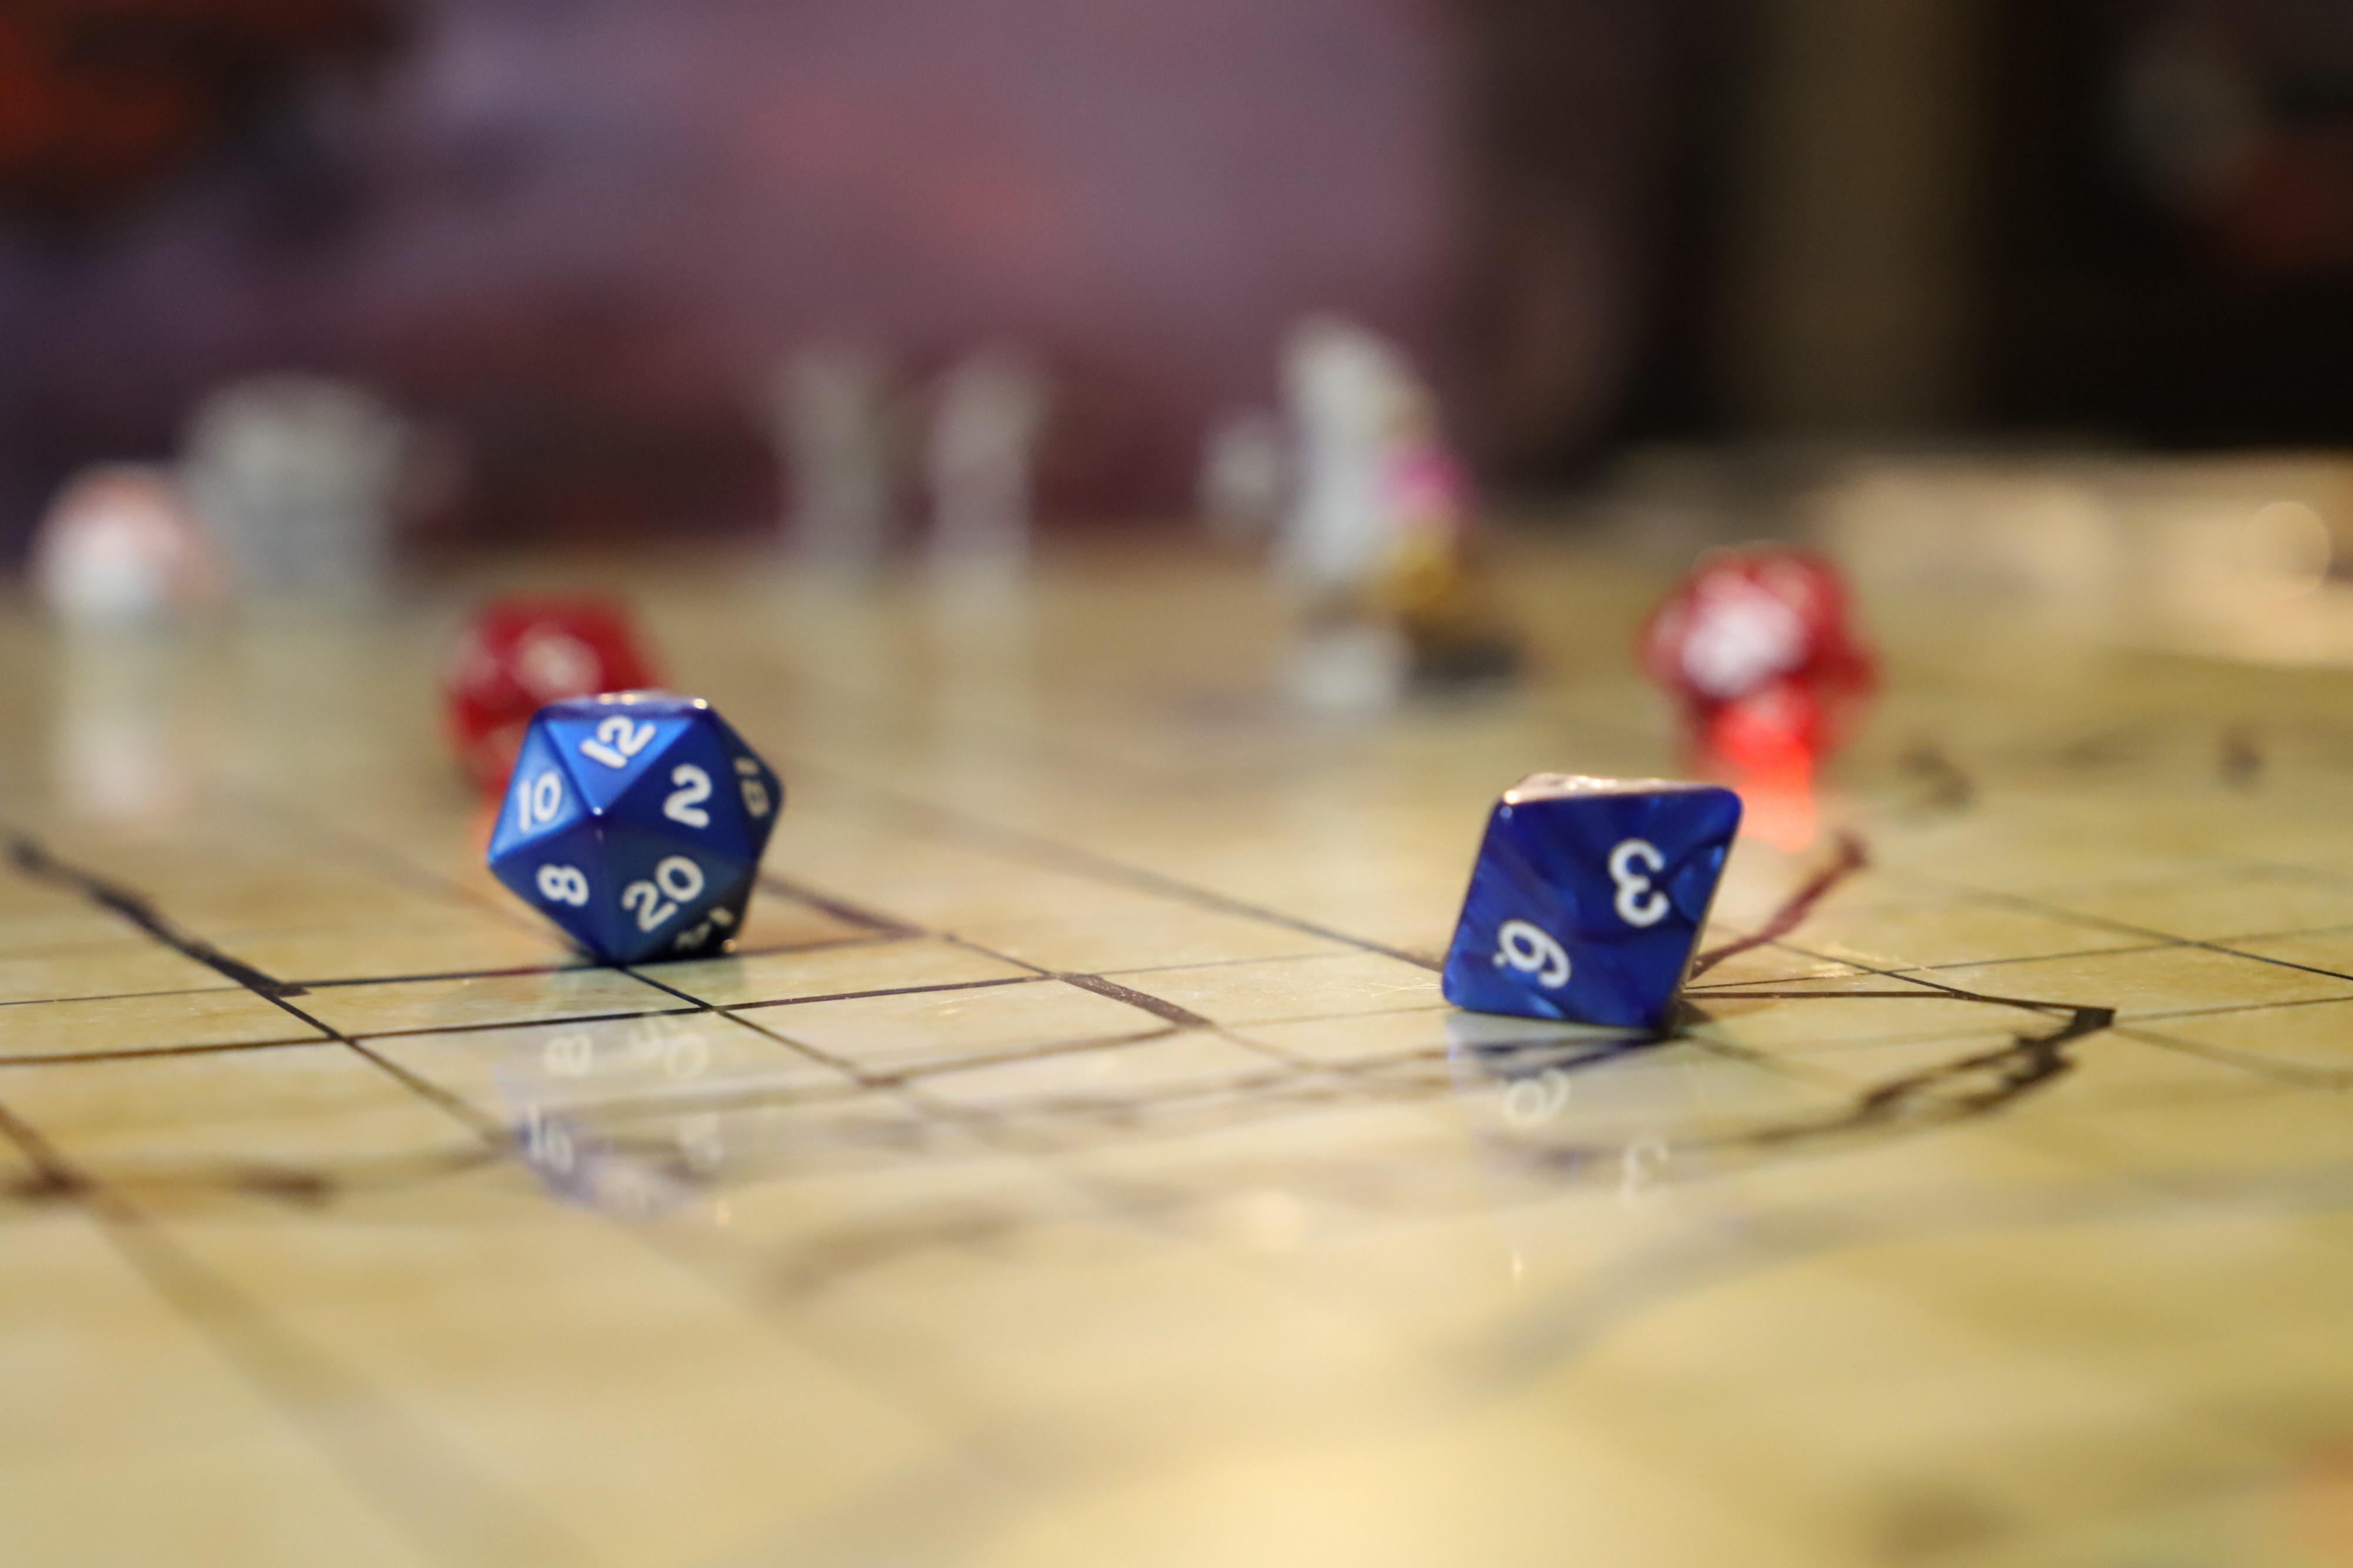 Photo taken by Melinda Garza of a D20 and a D10 dice